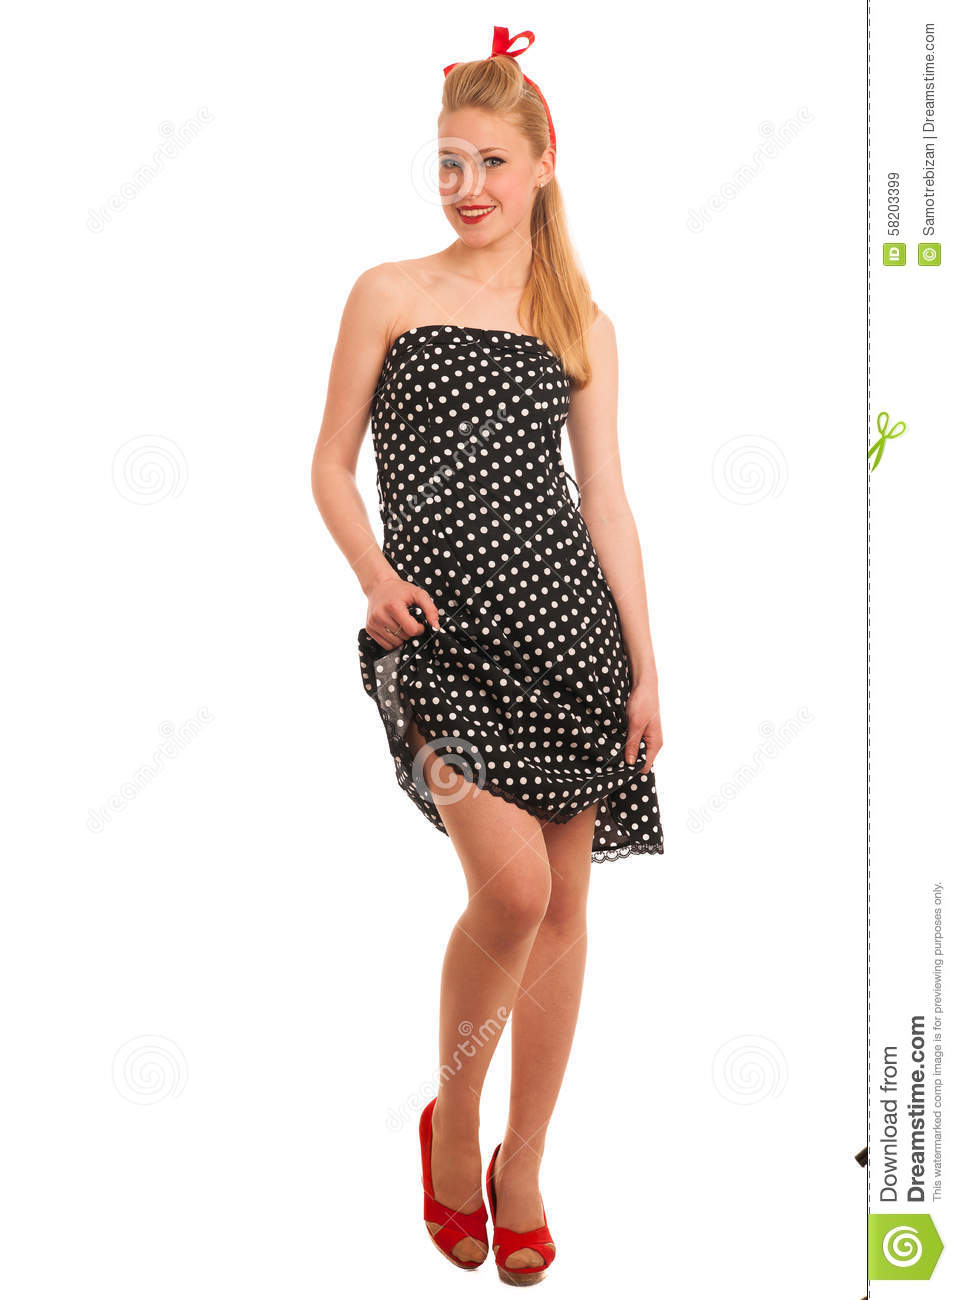 Cute Pin Up Style Fashion Model In Retro Dress Stock Image 28481713